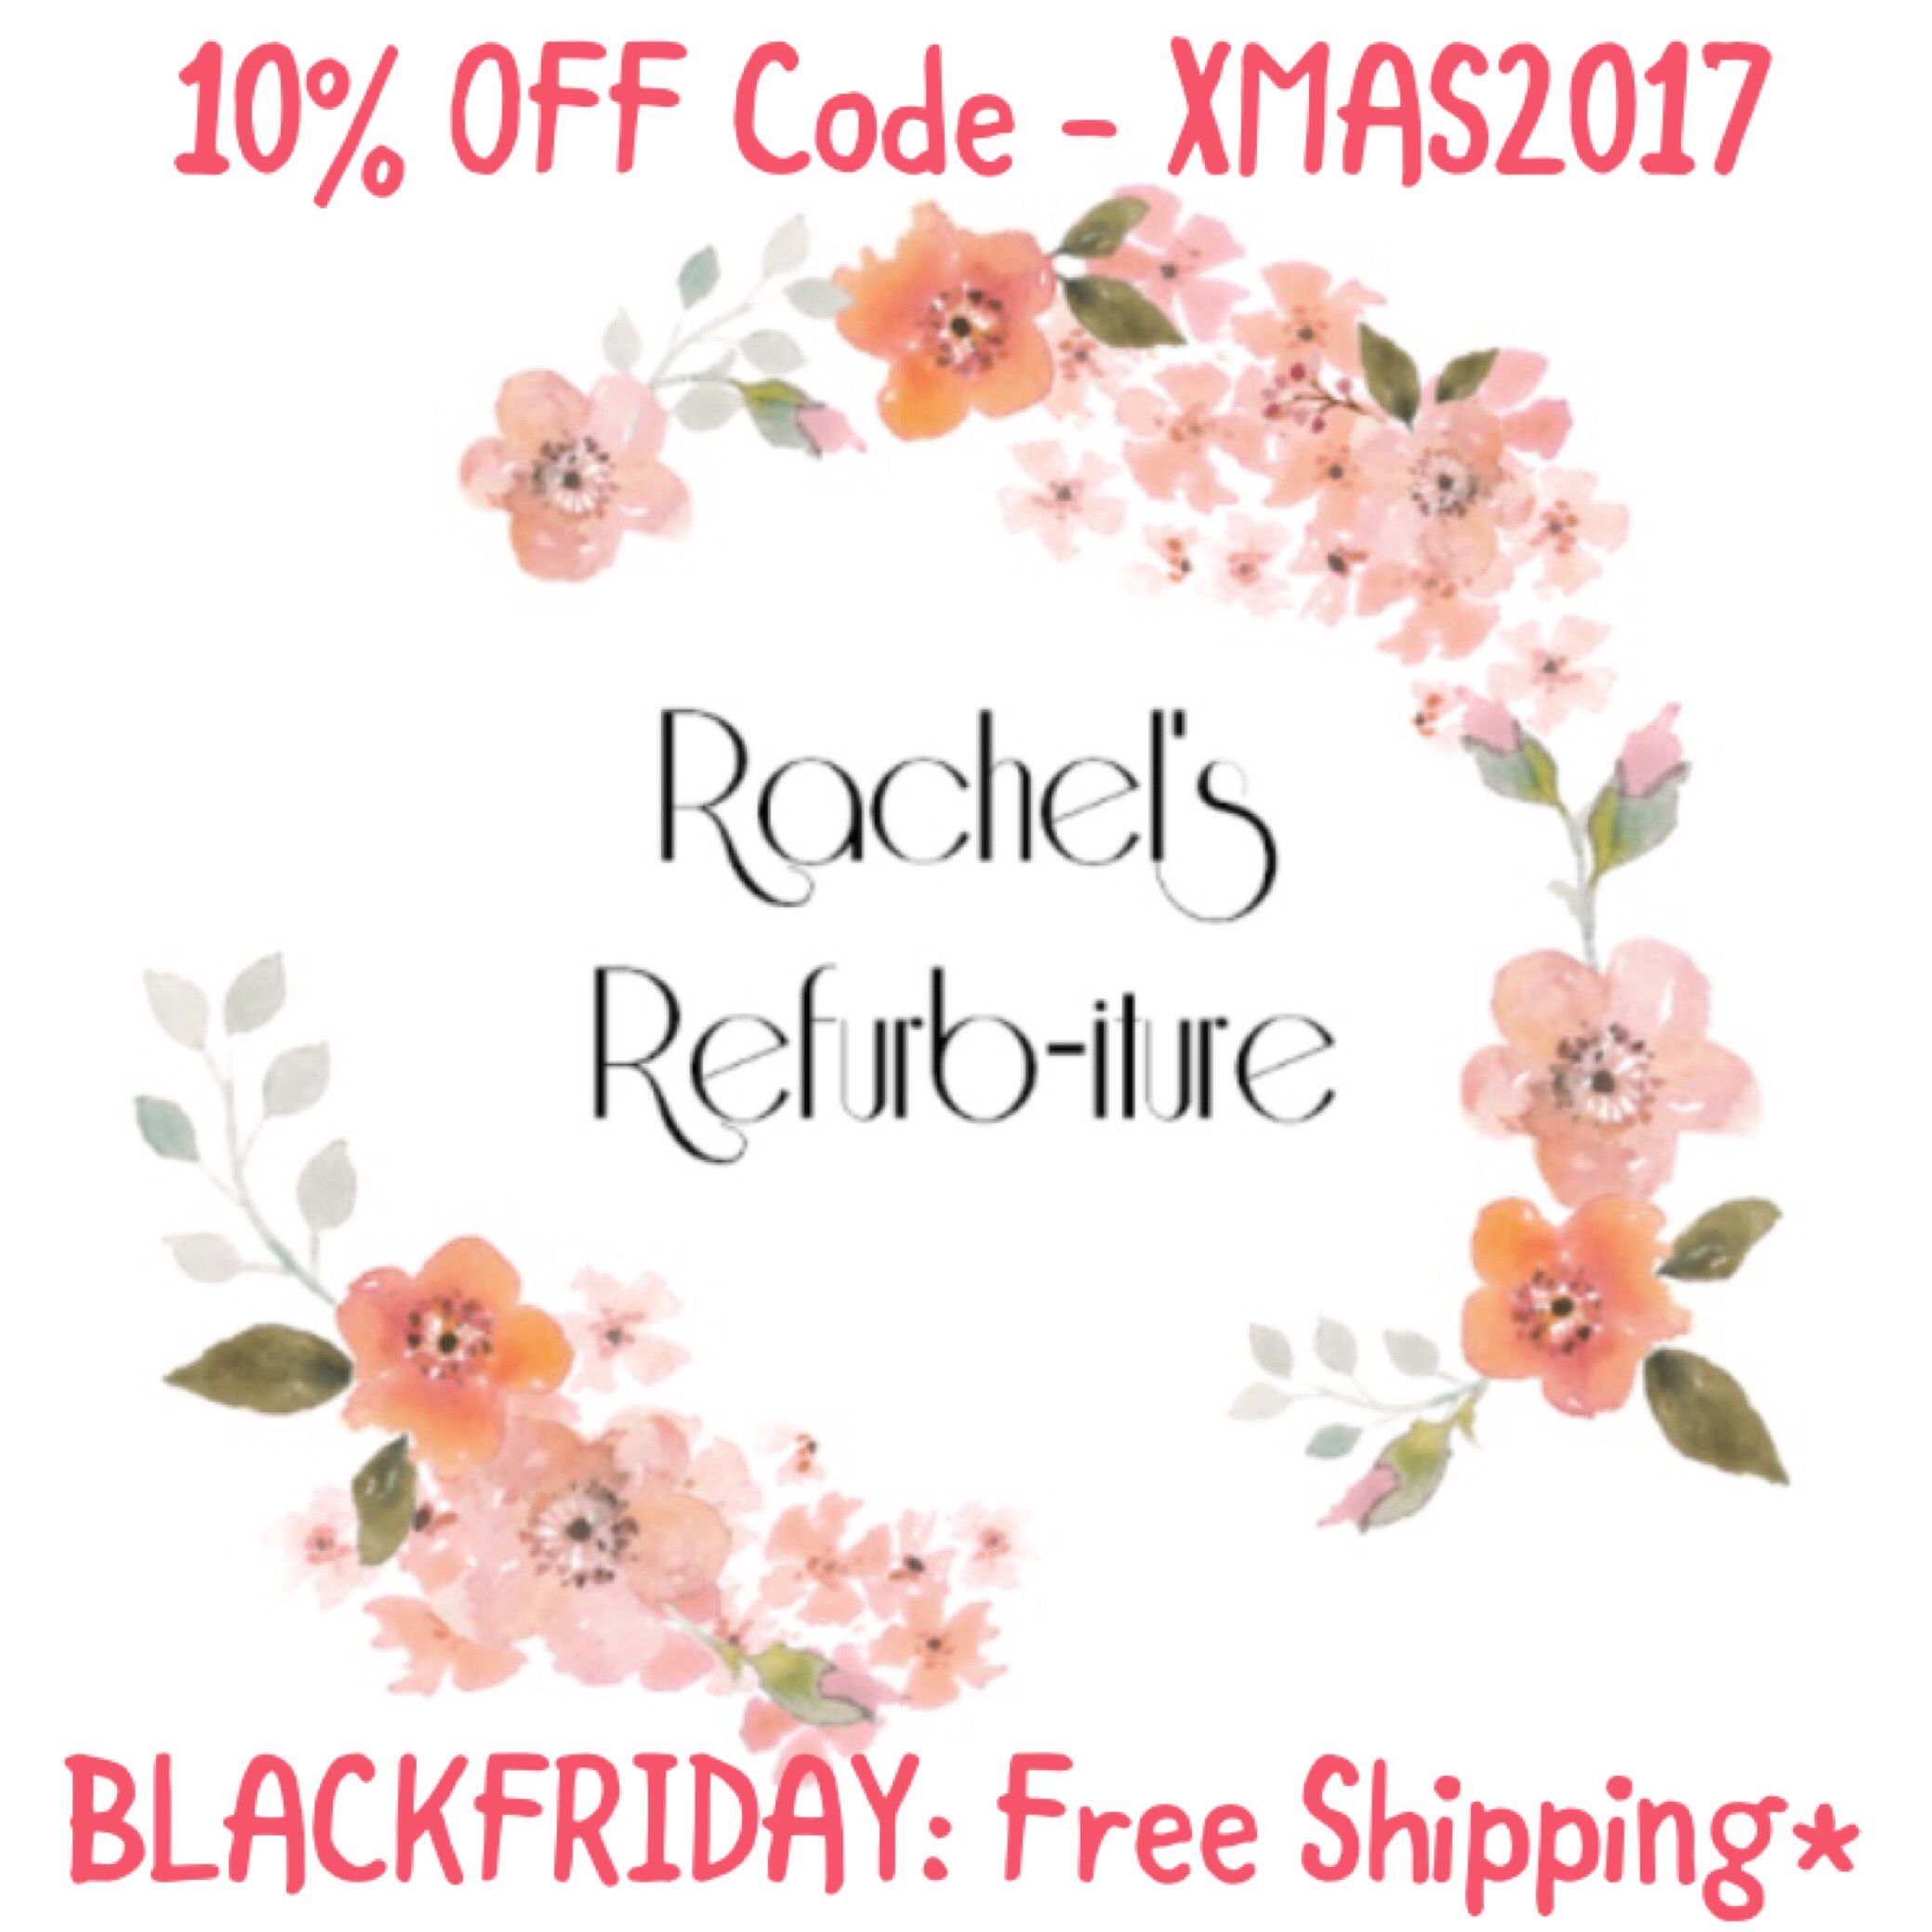 BLACKFRIDAY SALE: Free Shipping ...and Use Coupon Code